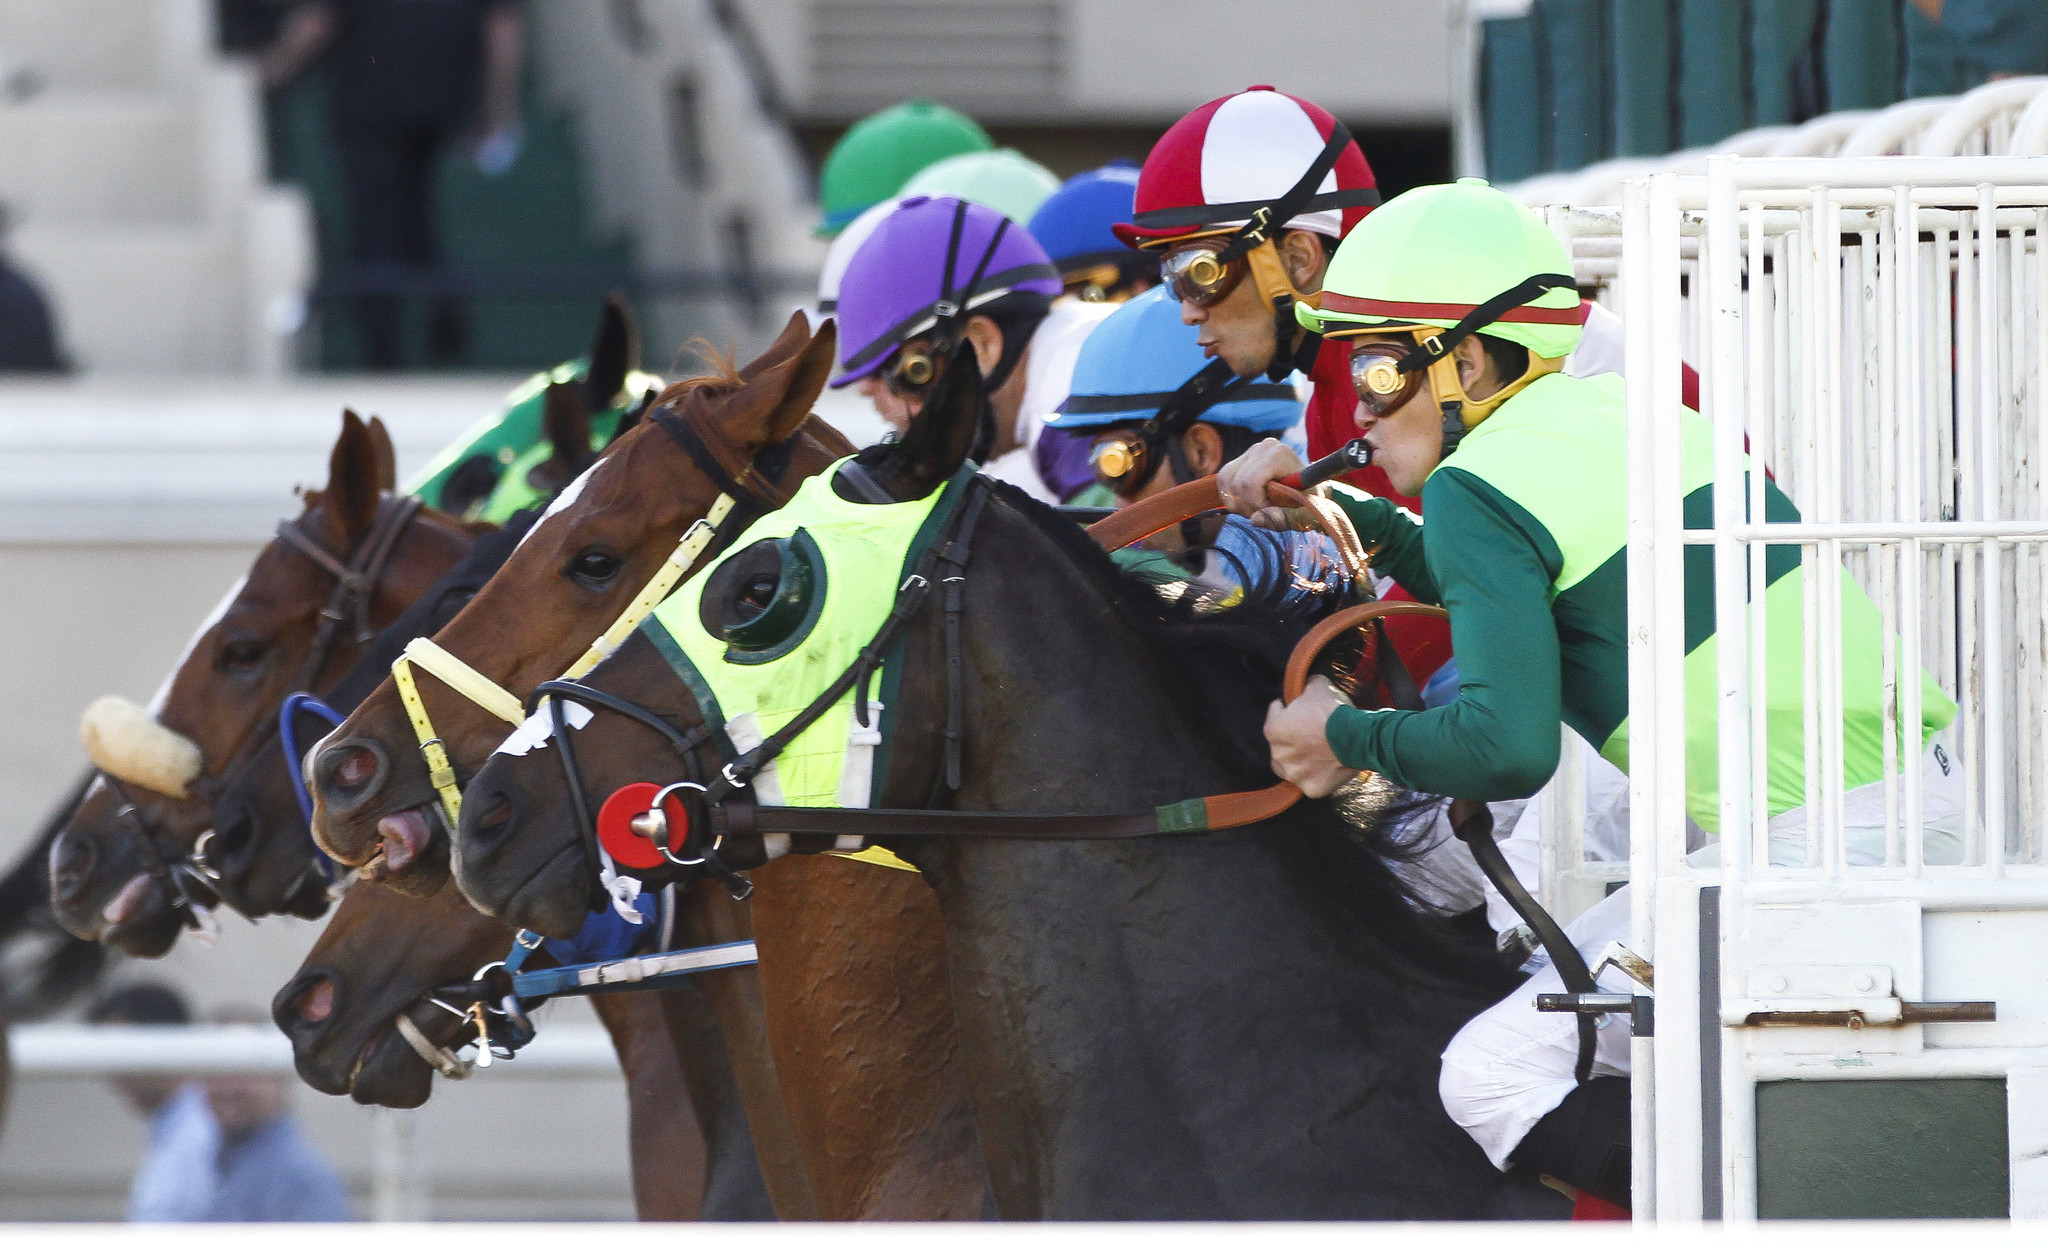 Horses and jockeys bolt out of the gate at the start of a recent race at Del Mar. The track continues to focus on altering expectations amid an uncertain industry.